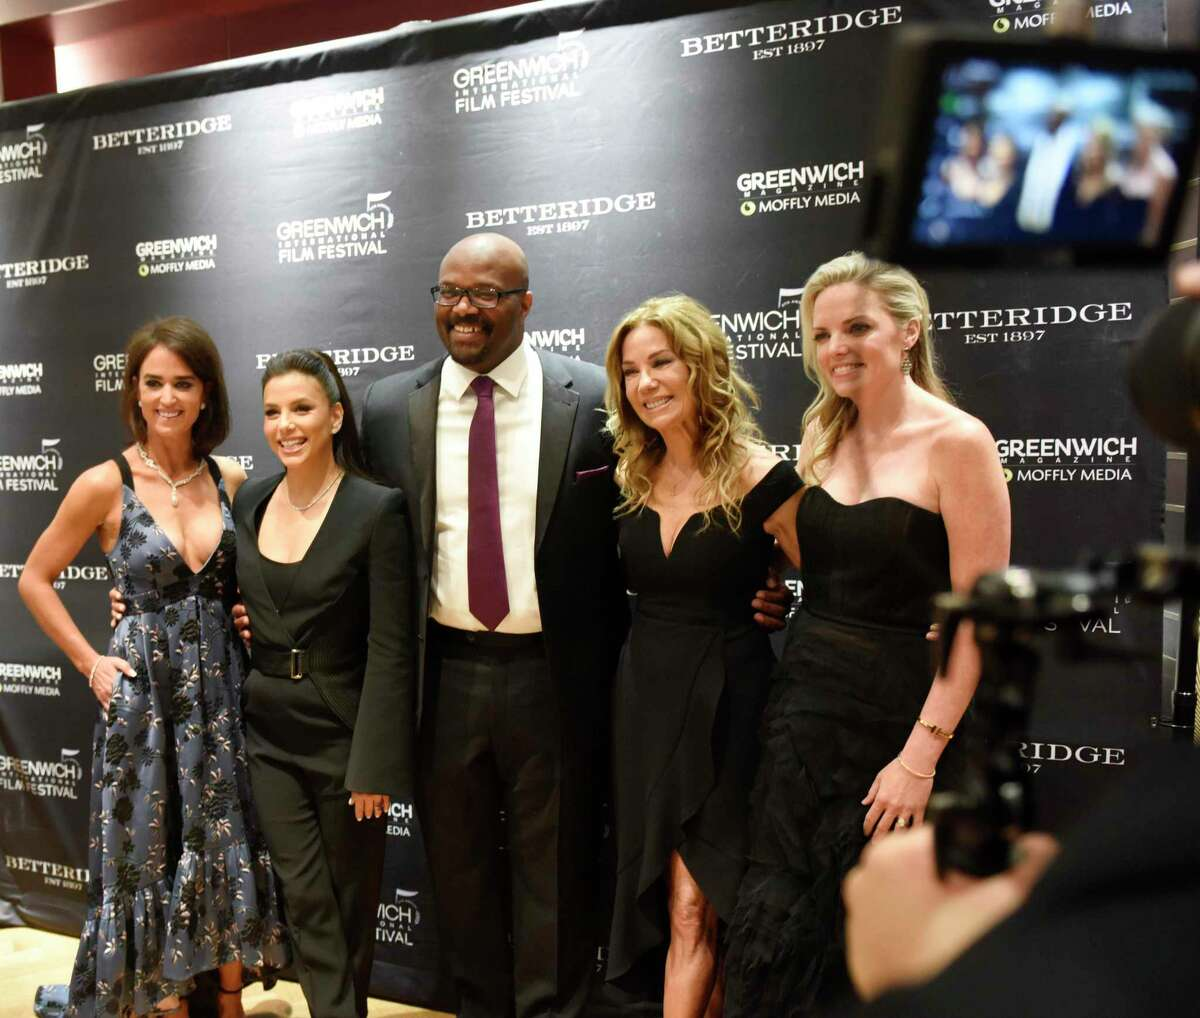 The Greenwich International Film Festival Changemaker Gala Meet & Greet cocktail reception at Betteridge Jewelers in Greenwich, Conn. Thursday, May 30, 2019. Celebrity Changemaker, Eva Longoria Bastón, was honored for her work with the Eva Longoria Foundation, while Community Changemaker, Bobby Walker, was honored for his work with the Boys & Girls Club of Greenwich. The black tie awards dinner at L'Escale emceed by television host and Greenwich resident Kathie Lee Gifford.